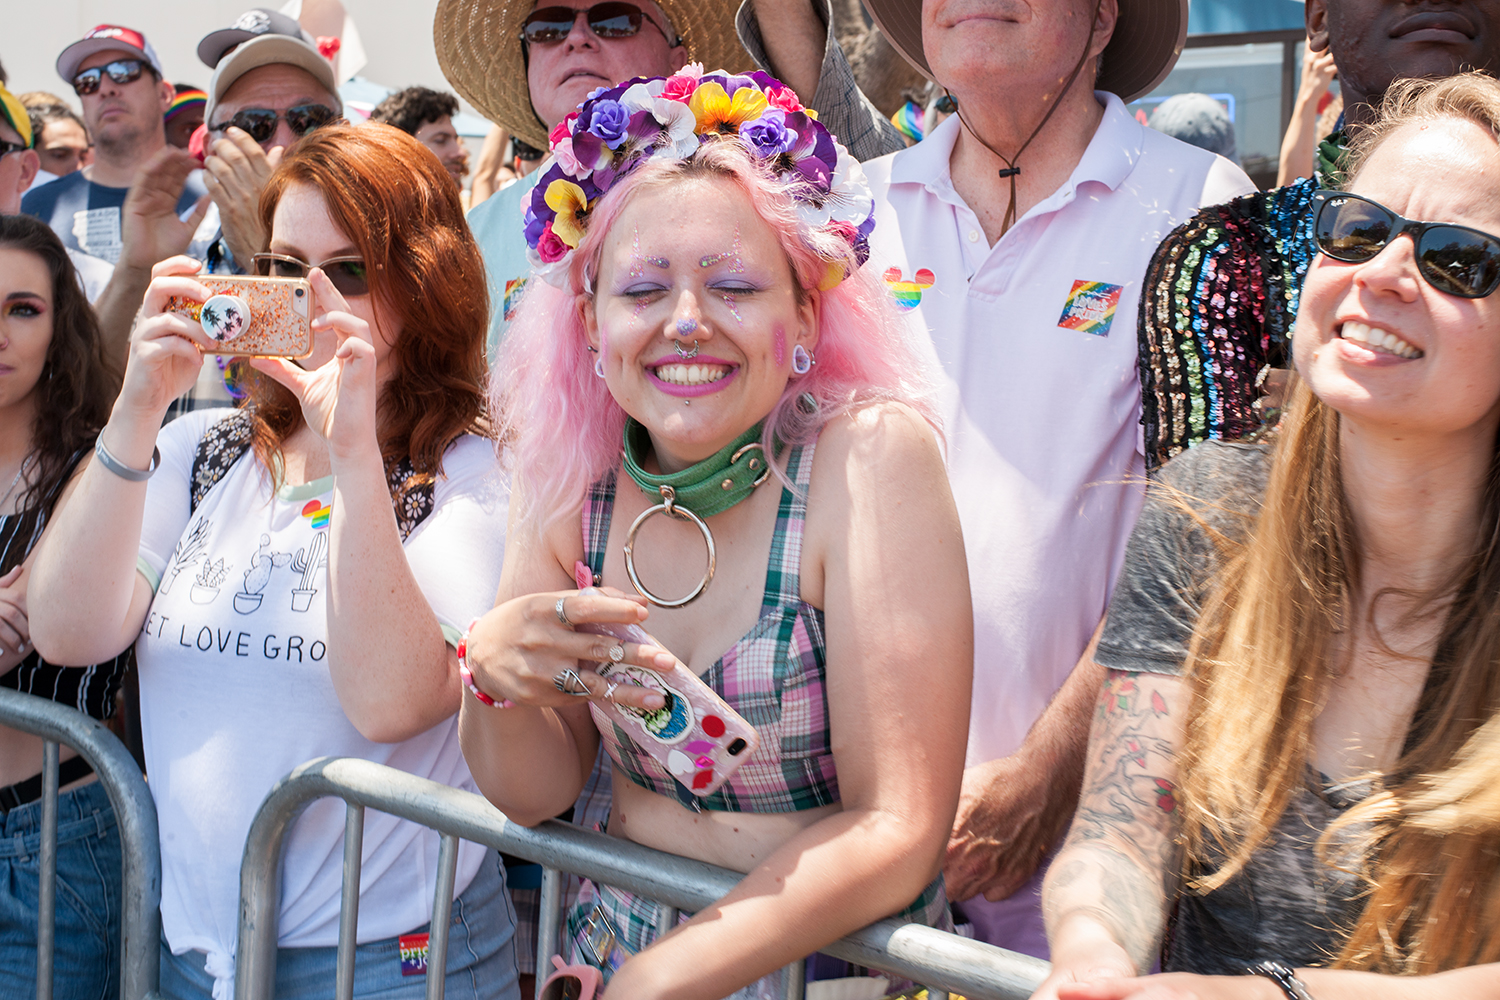 Daniella-Hehmann-Photographer-Los-Angeles-Pride--08.jpg